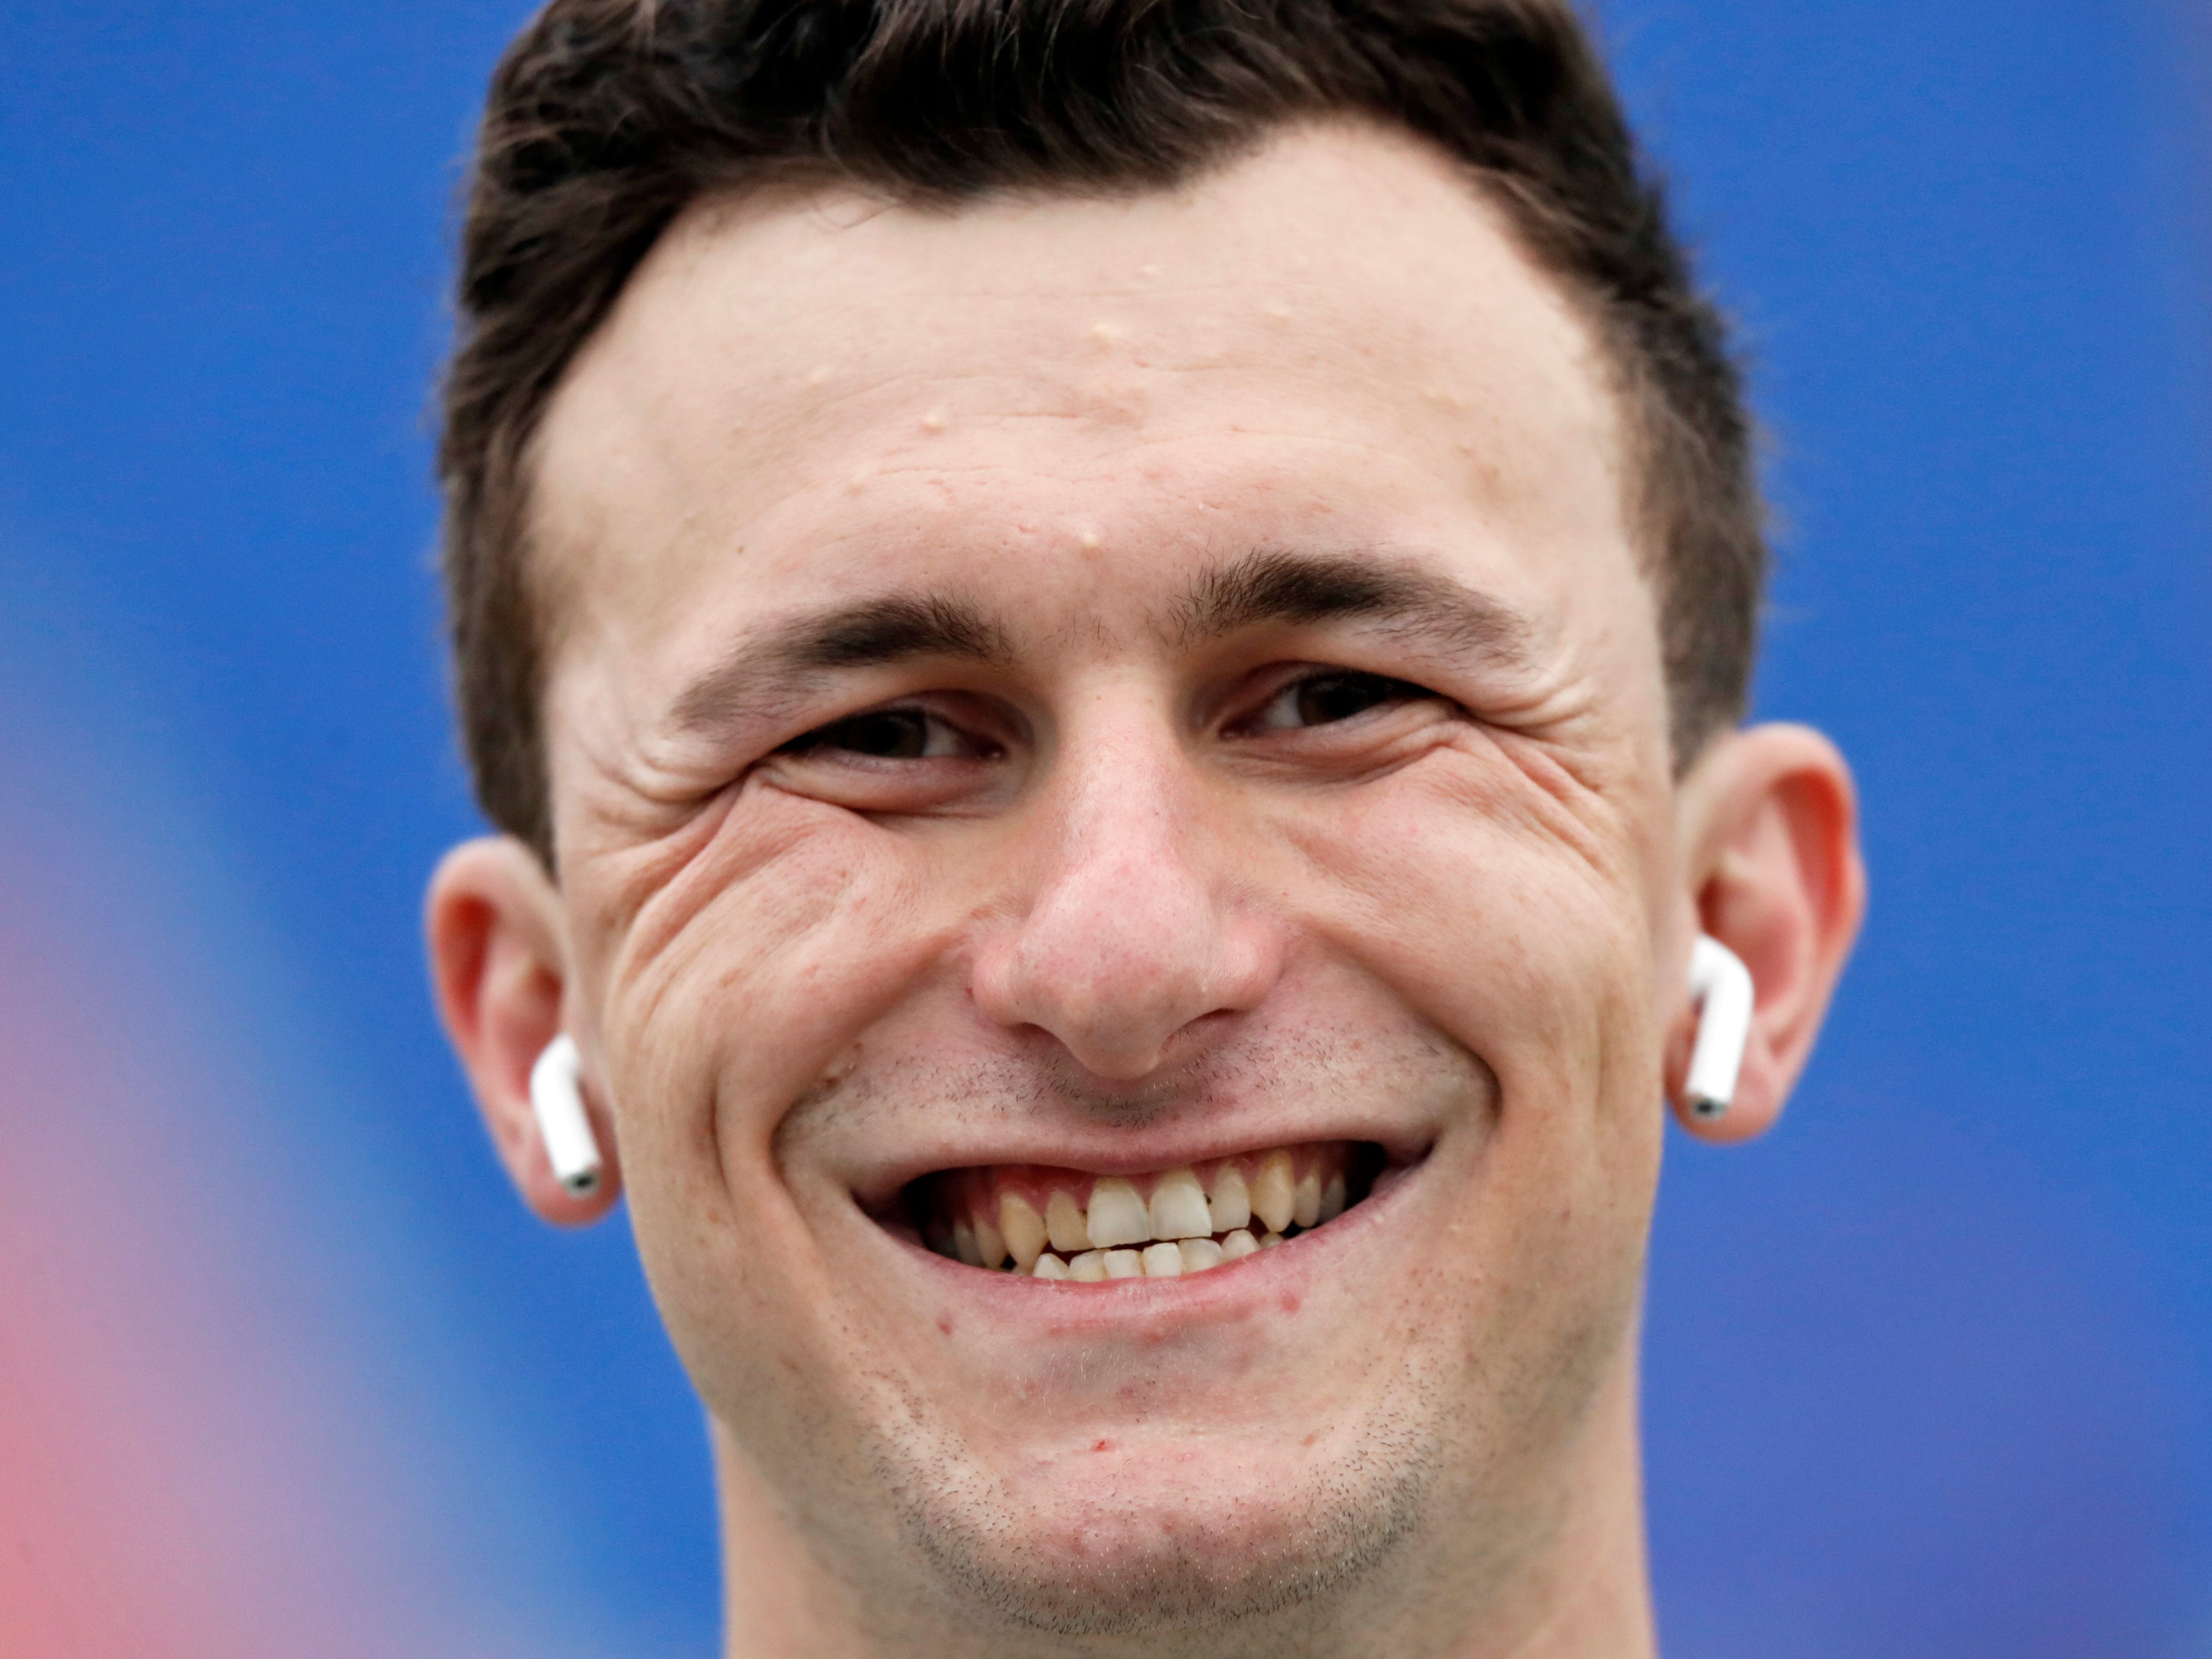 Memphis Express quarterback Johnny Manziel is seen before an AAF football game against the Birmingham Iron, Sunday, March 24, 2019, at Liberty Bowl Memorial Stadium in Memphis.